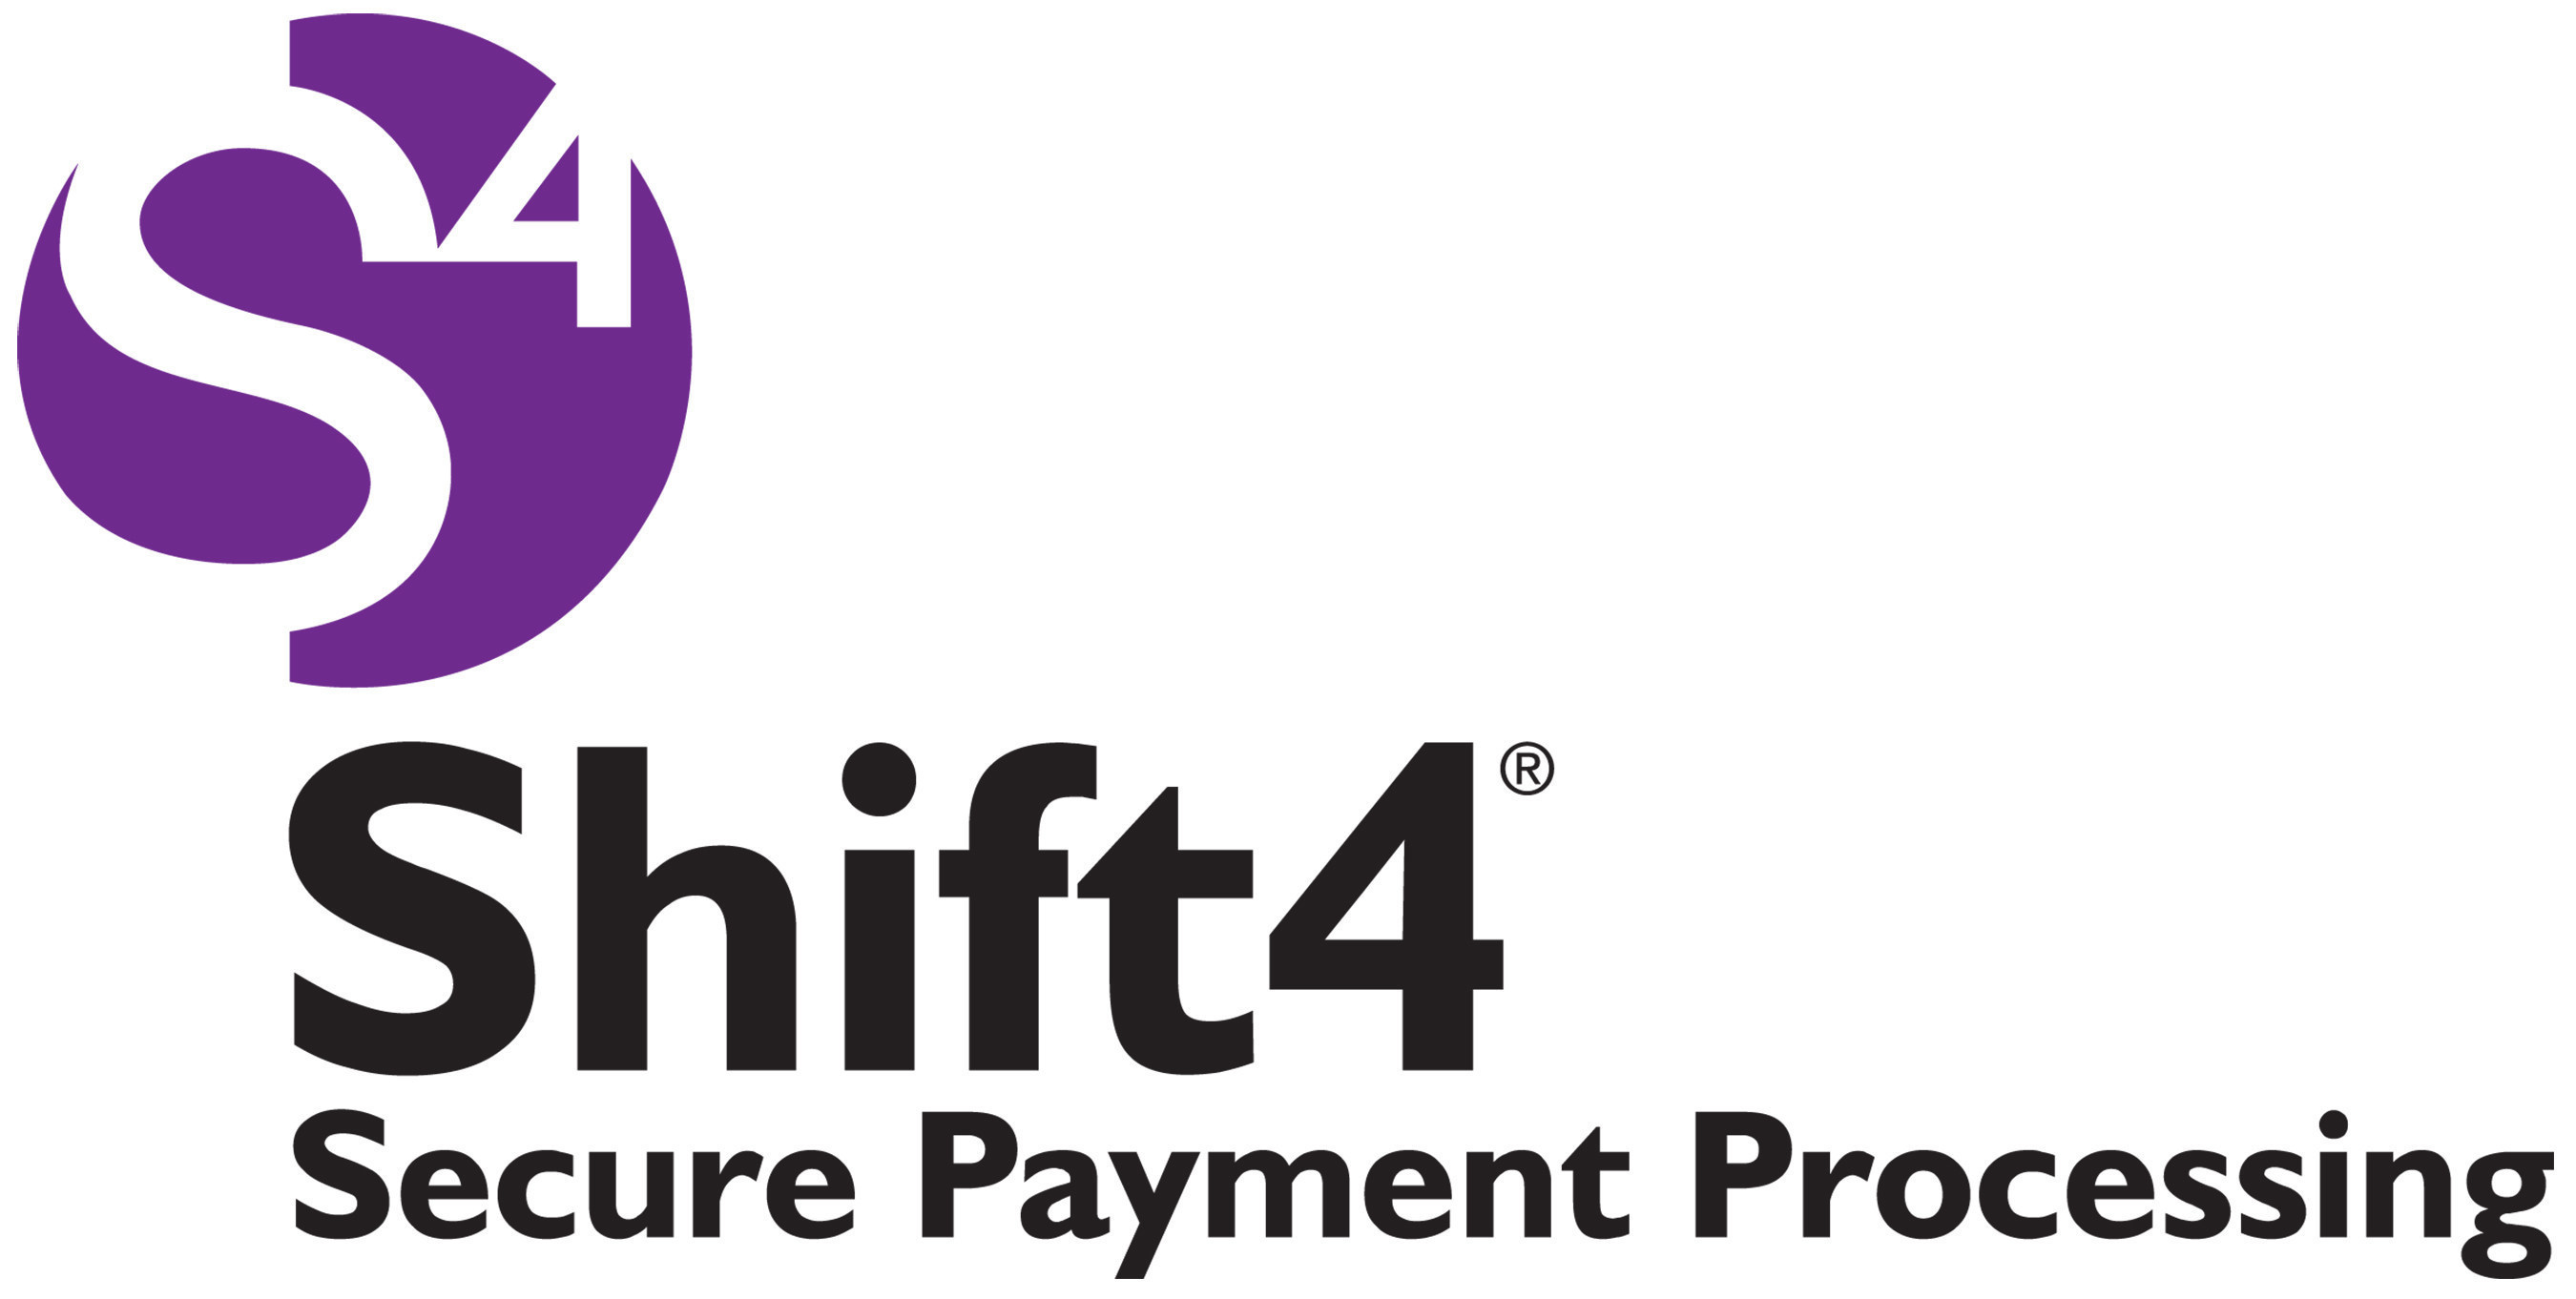 Shift4 is dedicated to maintaining the trust of more than 24,000 merchants who rely on their DOLLARS ON THE NET(R) payment gateway to process upwards of half a billion credit, debit, and gift card transactions each year. Shift4's commitment to innovation keeps them at the forefront of emerging technologies including P2PE, mobile payments, EMV, and tokenization. Shift4 helps businesses secure the lowest possible payment processing rates and protect their brands by securing their customers' card data.